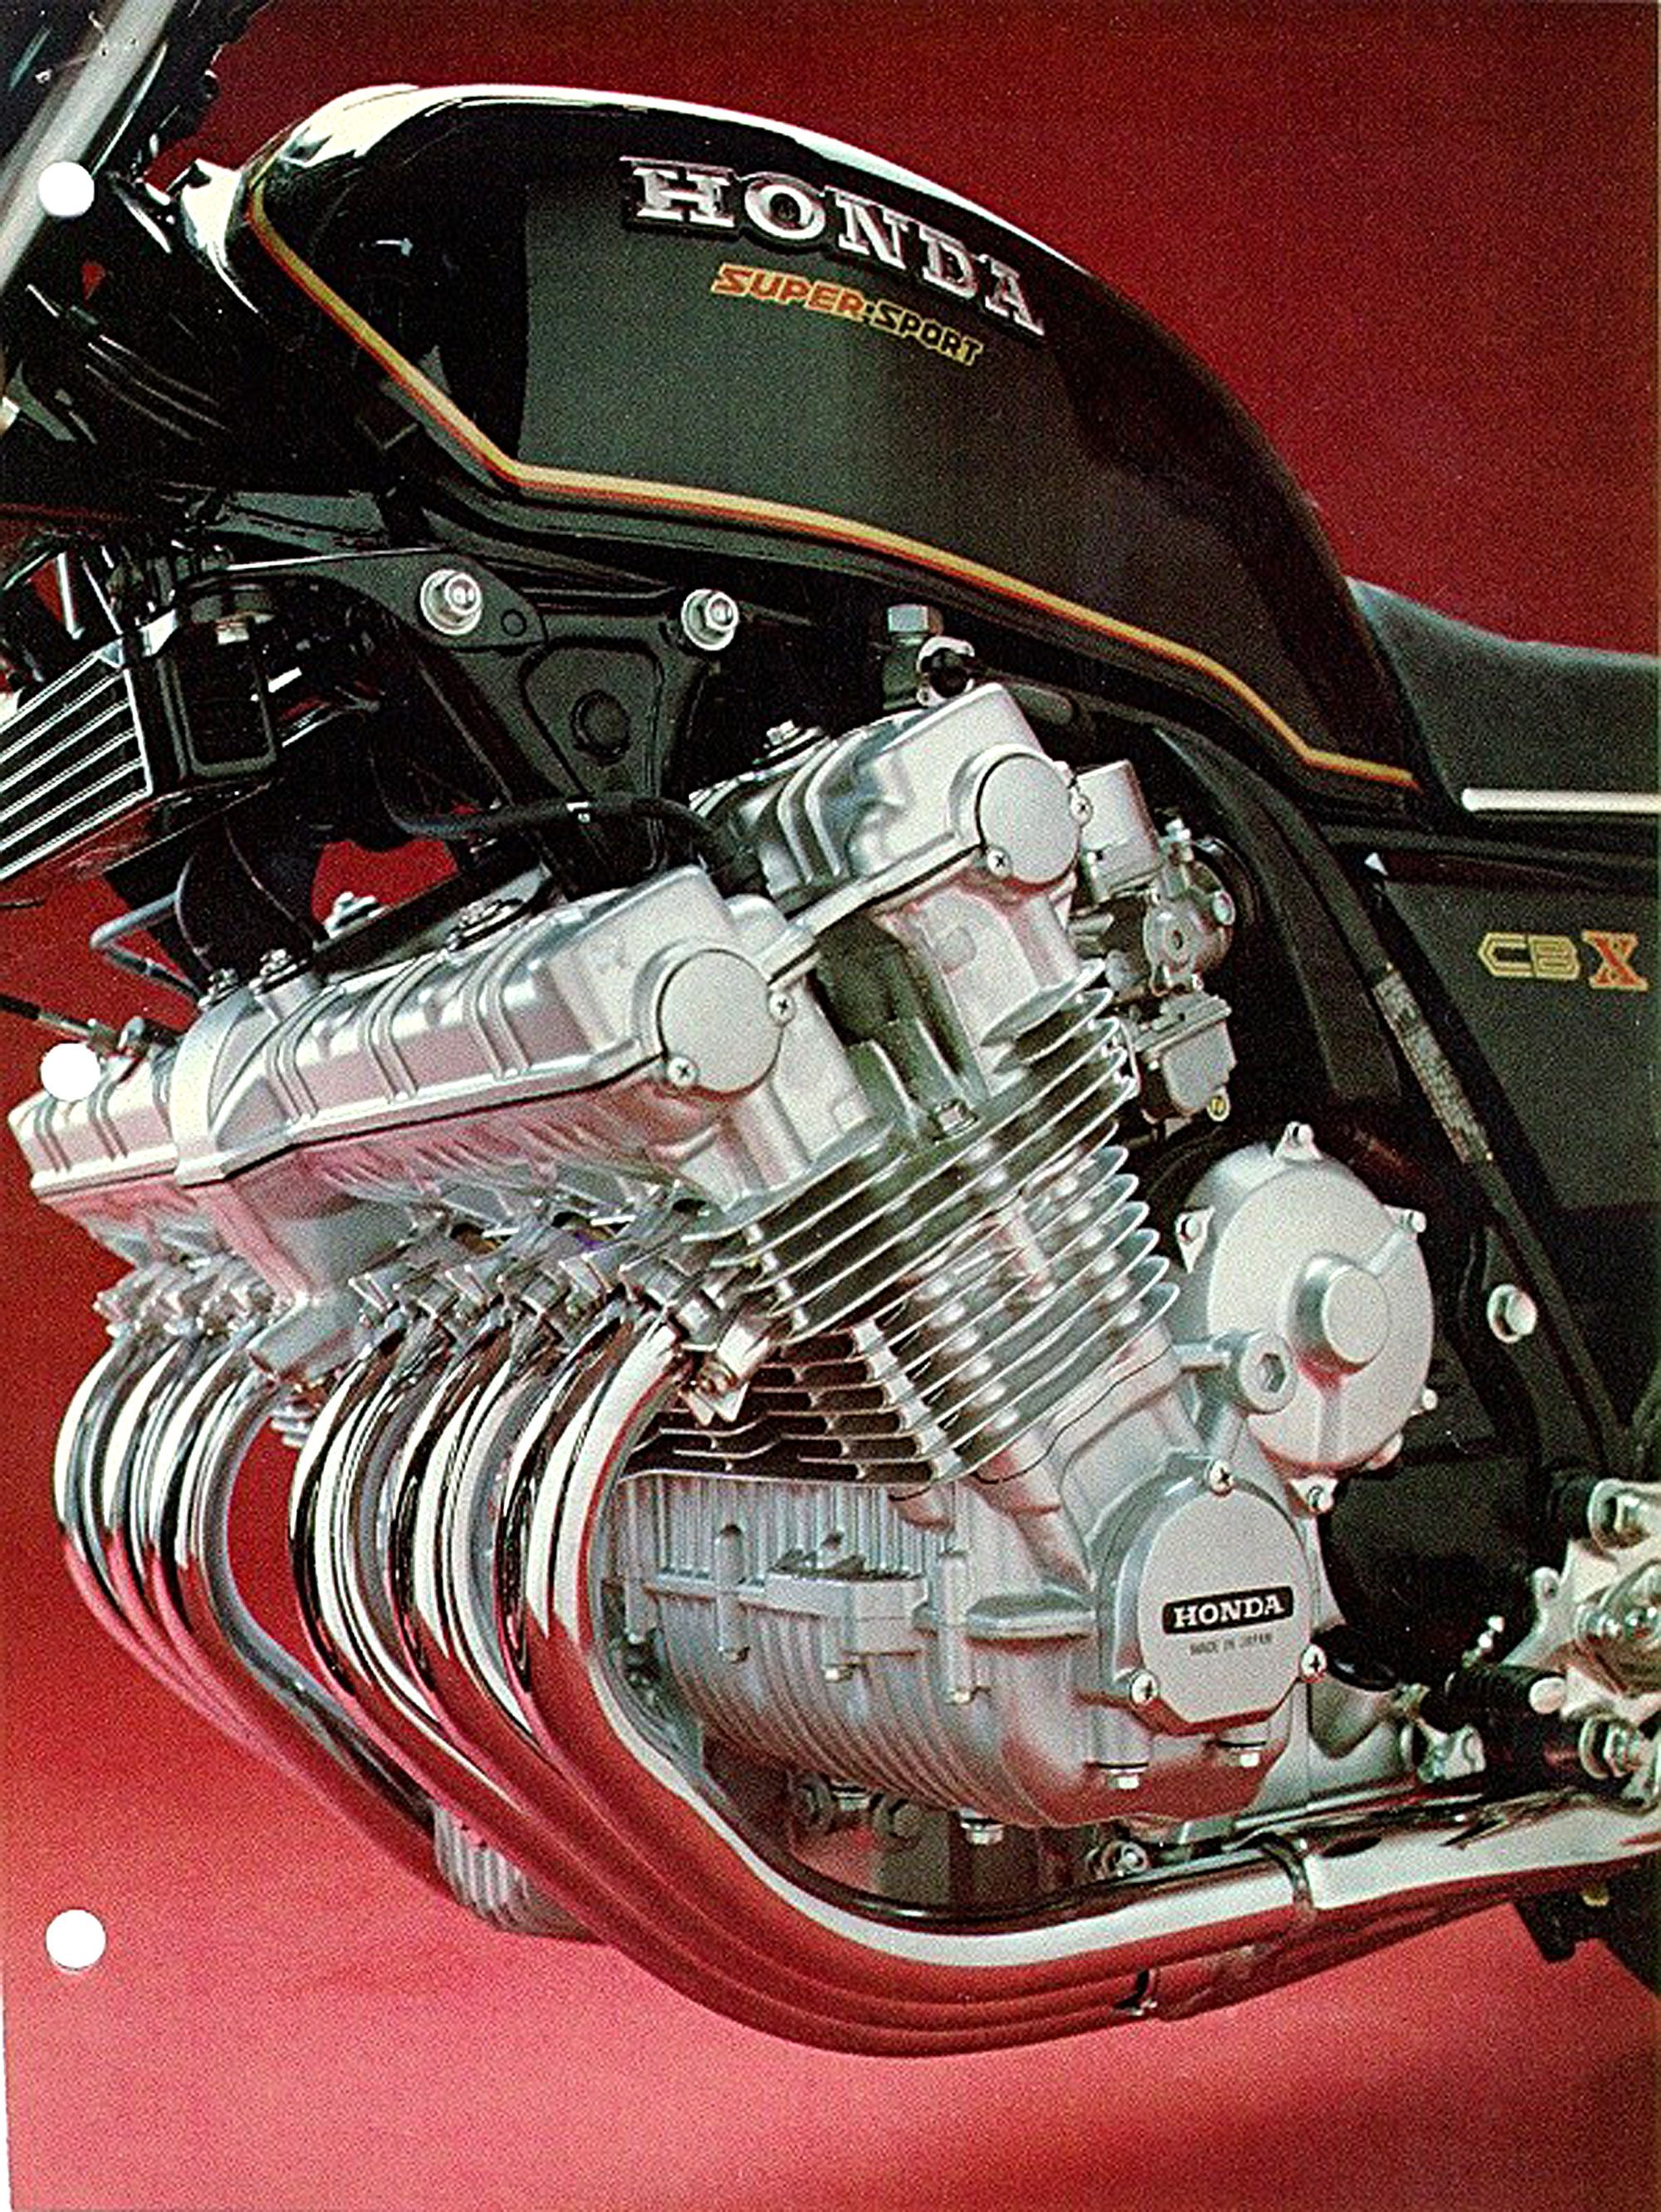 Honda Cbx 1000 The World S Fastest Production Motorcycle In 1978 1979 Dethroned By The Suzuki Gs1100 Et Honda Cbx Vintage Honda Motorcycles Cafe Racer Honda